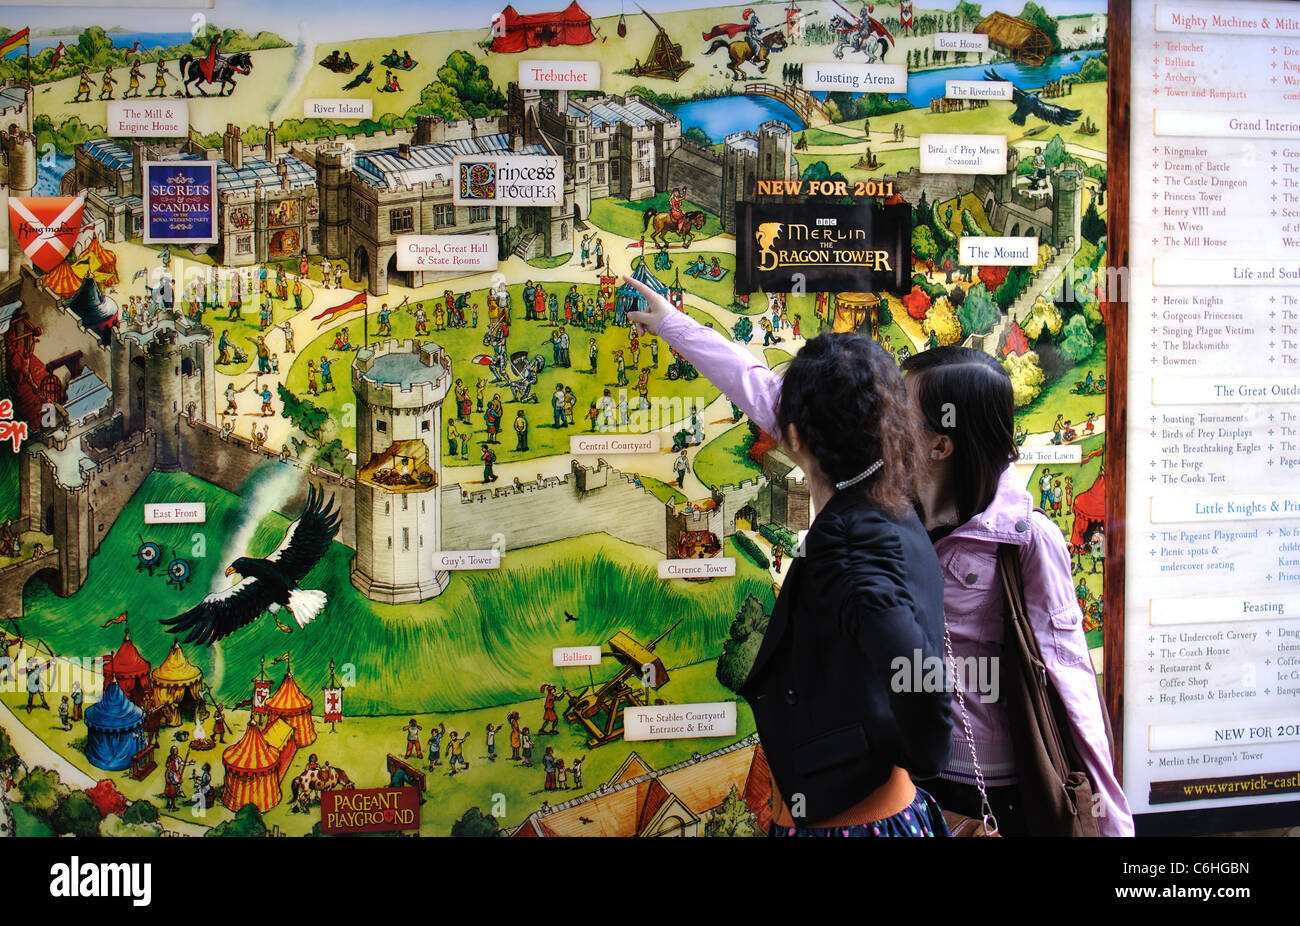 Warwick Castle Map Visitors map at Warwick Castle, UK Stock Photo: 38494729   Alamy